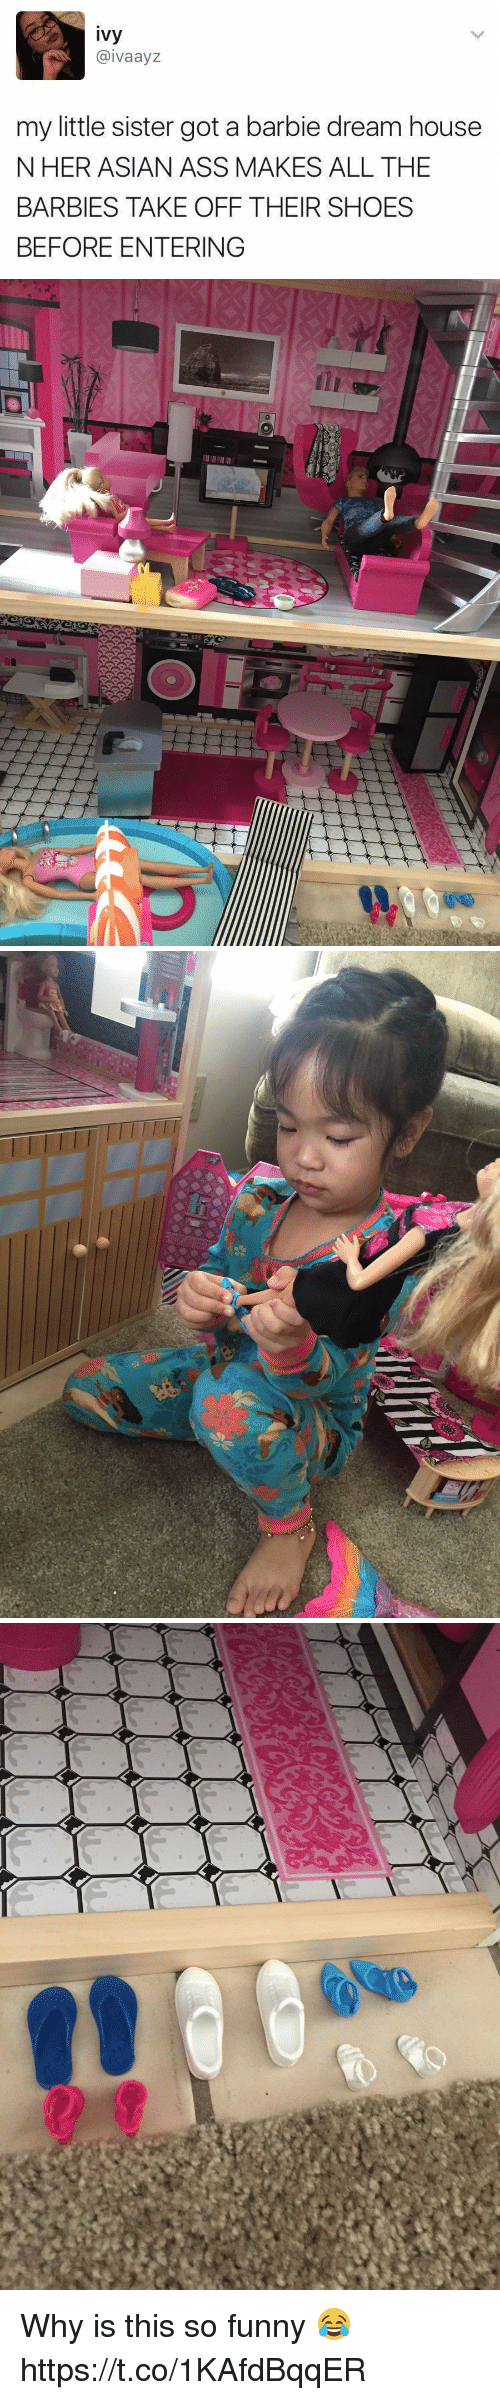 Asian, Ass, and Barbie: ivy  @ivaayz  my little sister got a barbie dream house  NHER ASIAN ASS MAKES ALL THE  BARBIES TAKE OFF THEIR SHOES  BEFORE ENTERING Why is this so funny 😂 https://t.co/1KAfdBqqER